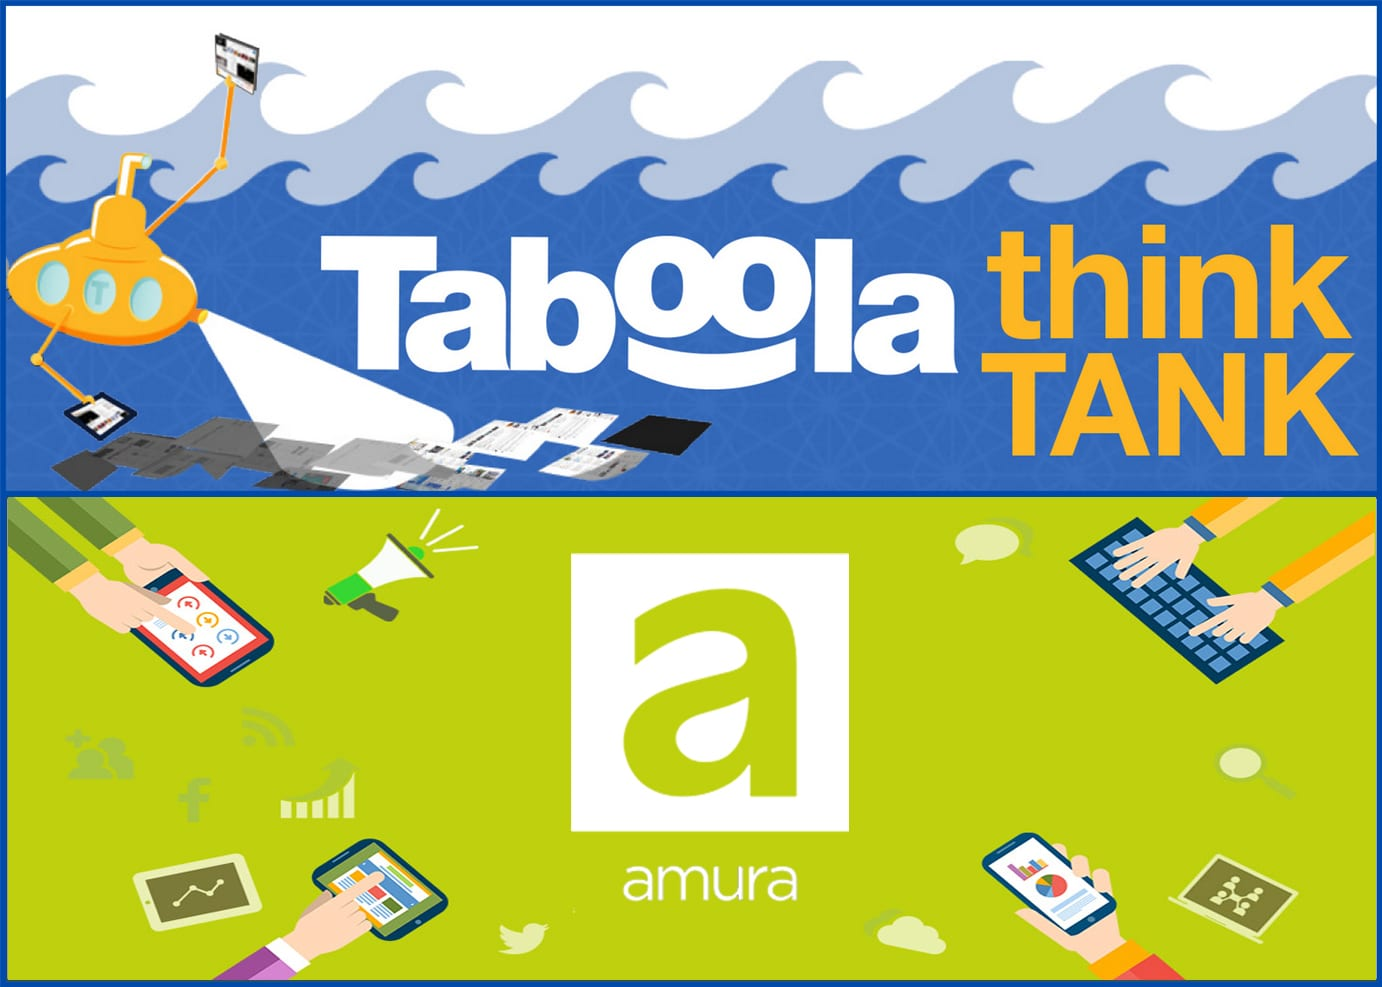 Taboola Think Tank: 4 Questions With Amura's Paid Media Manager Vaibhav Prabhune